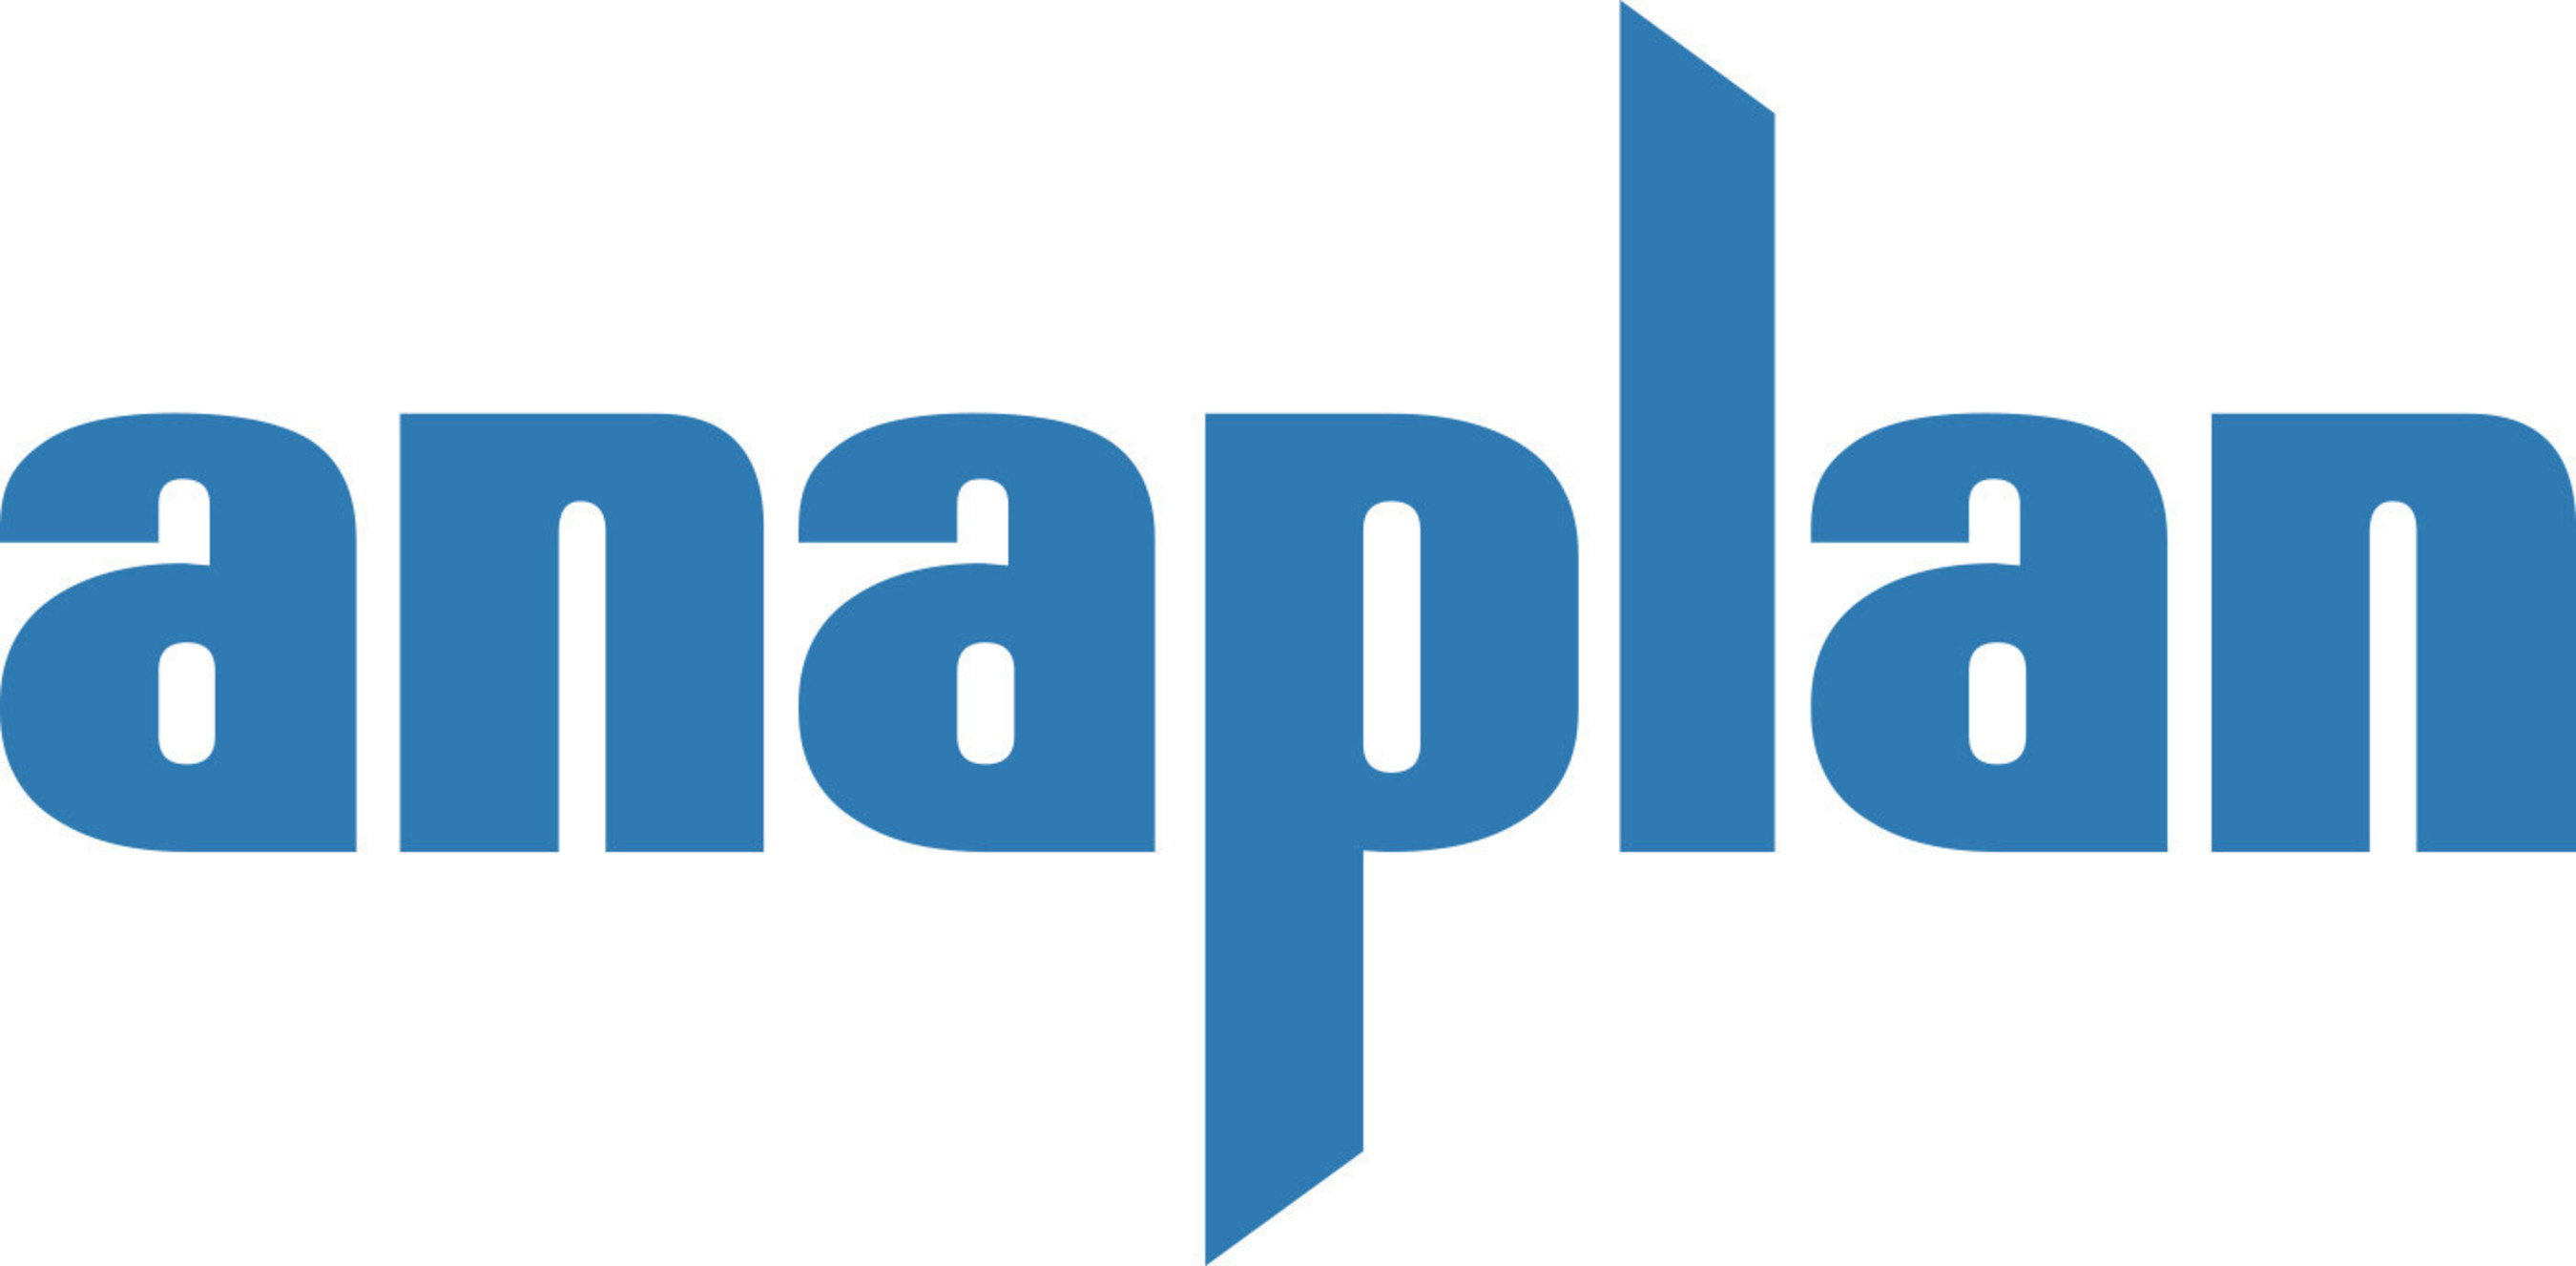 Anaplan Appoints Former Ariba CEO to Its Board of Directors